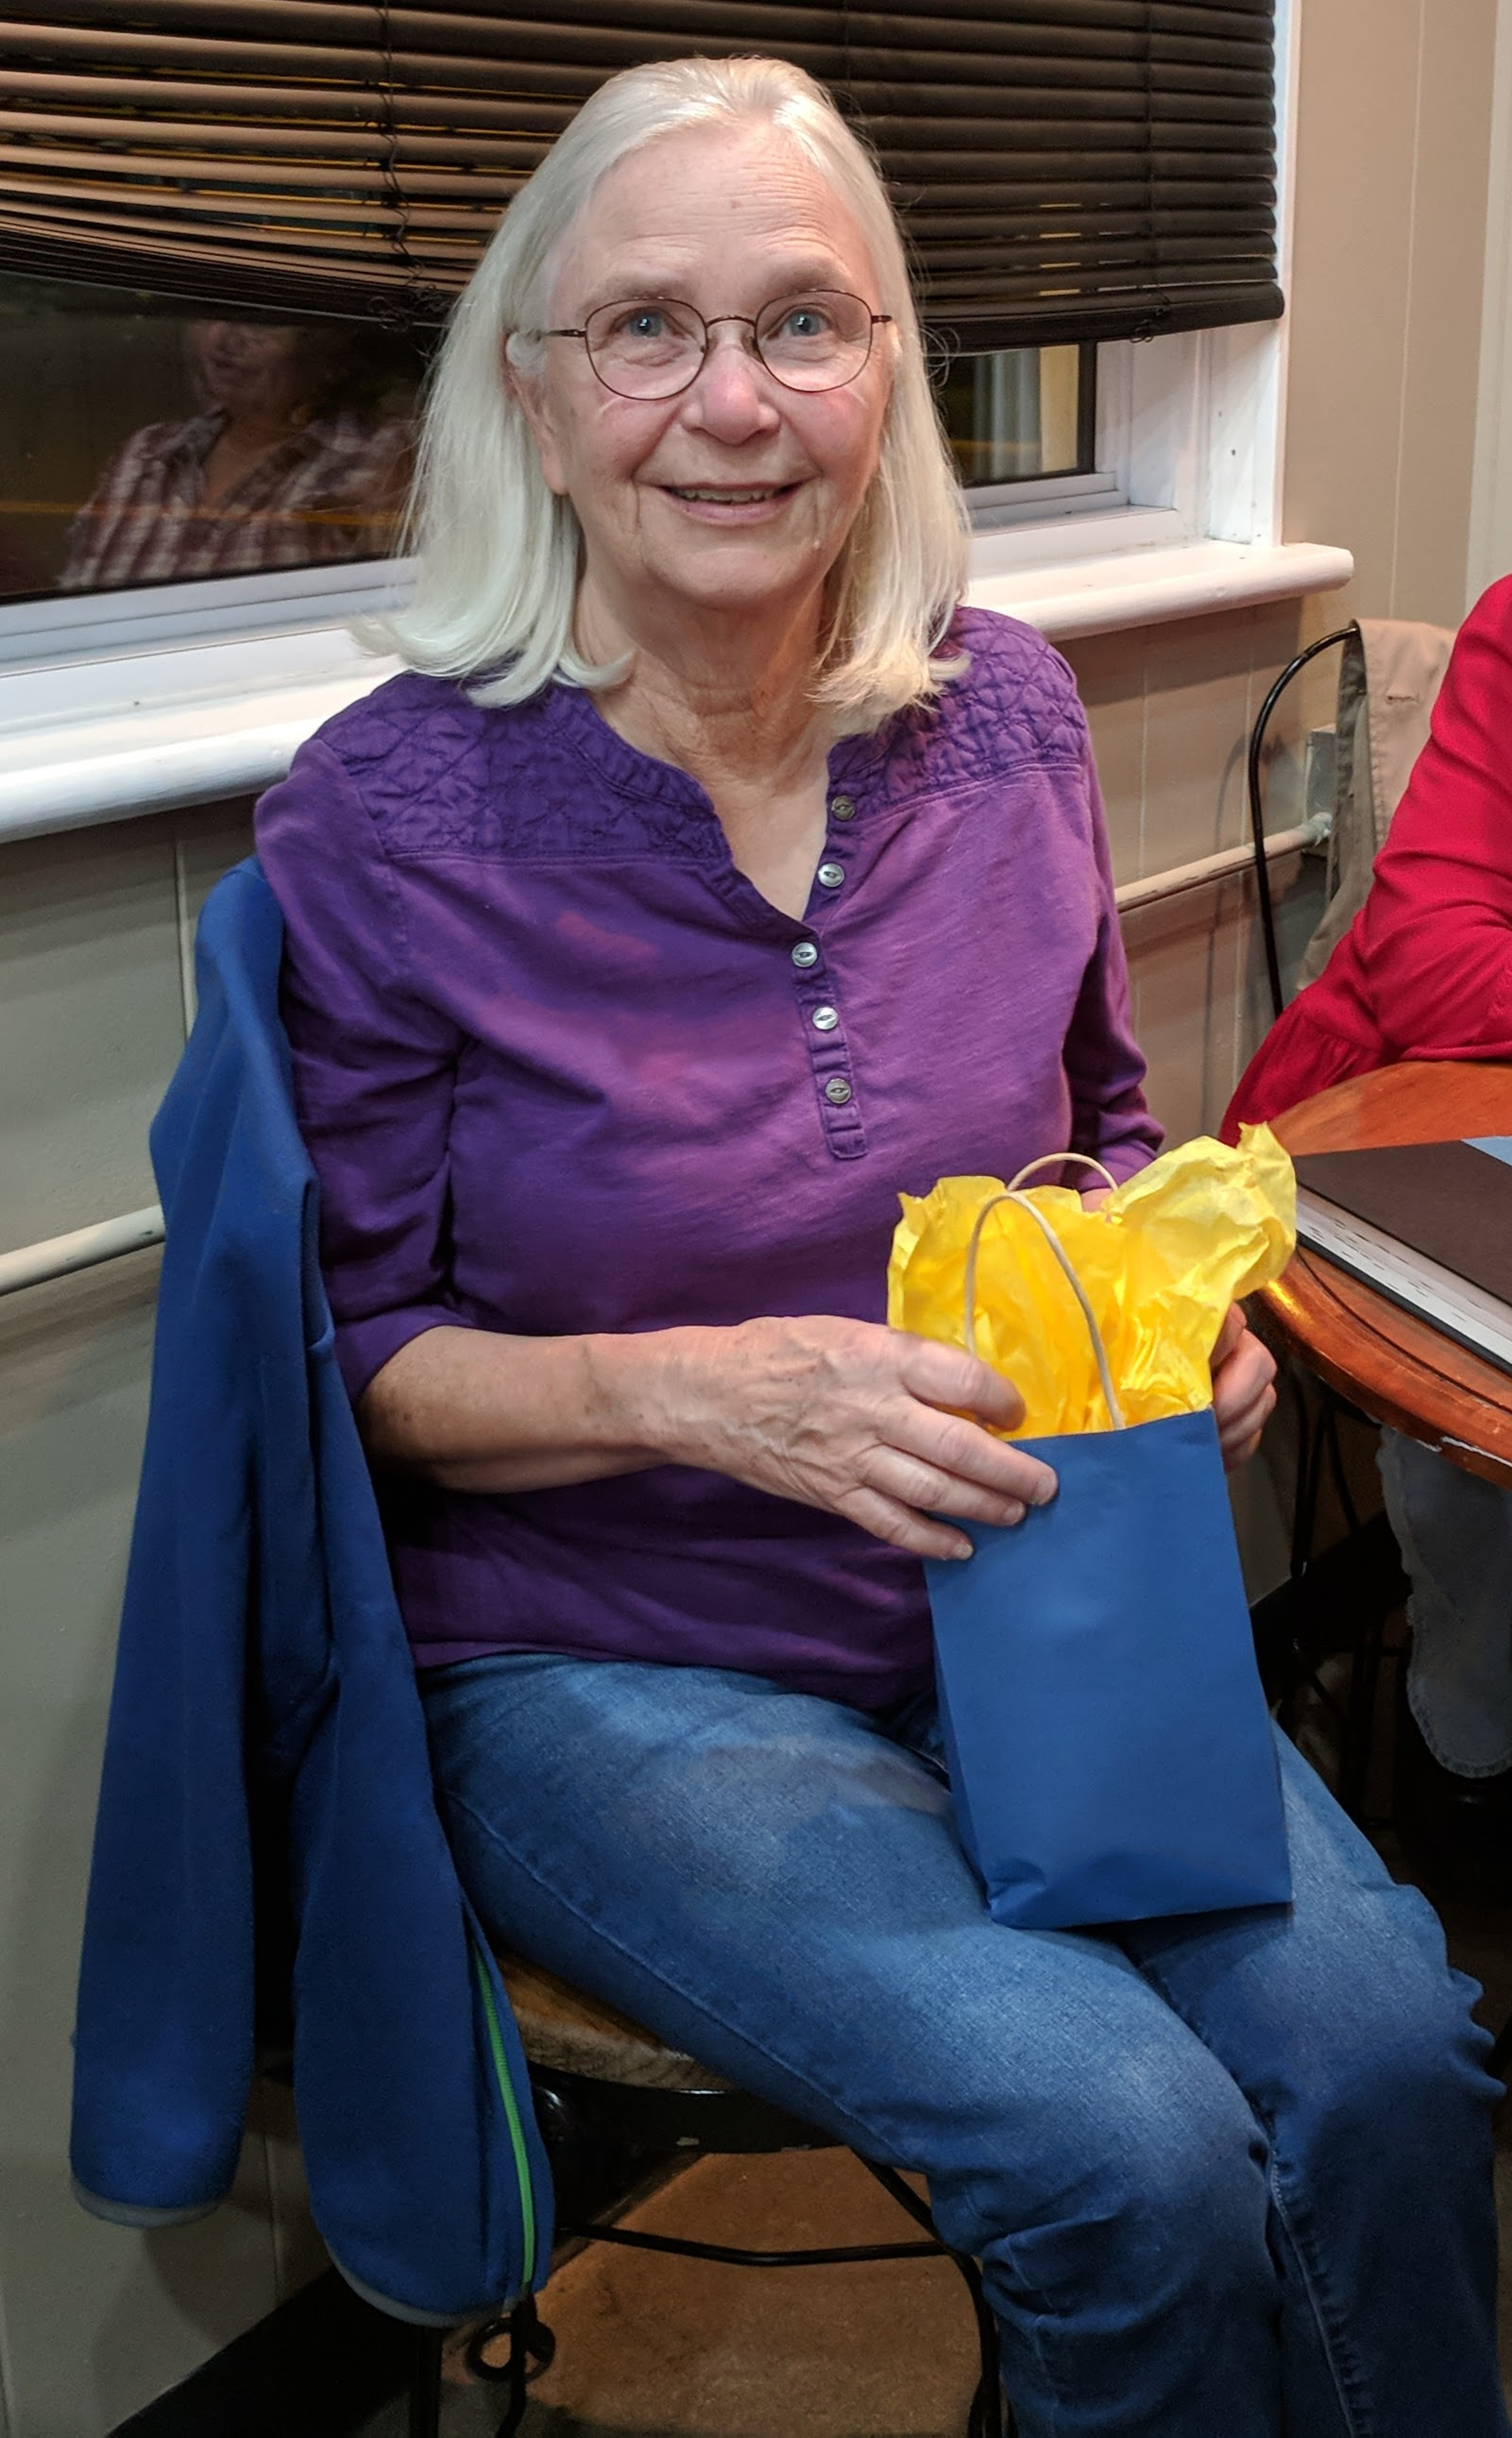 Congratulations to Carolyn Tadlock for winning the September book club prize. She won a honey's from Honey Run Farm, a back pack from the Friends of the Library, a first aid kit, and other items.